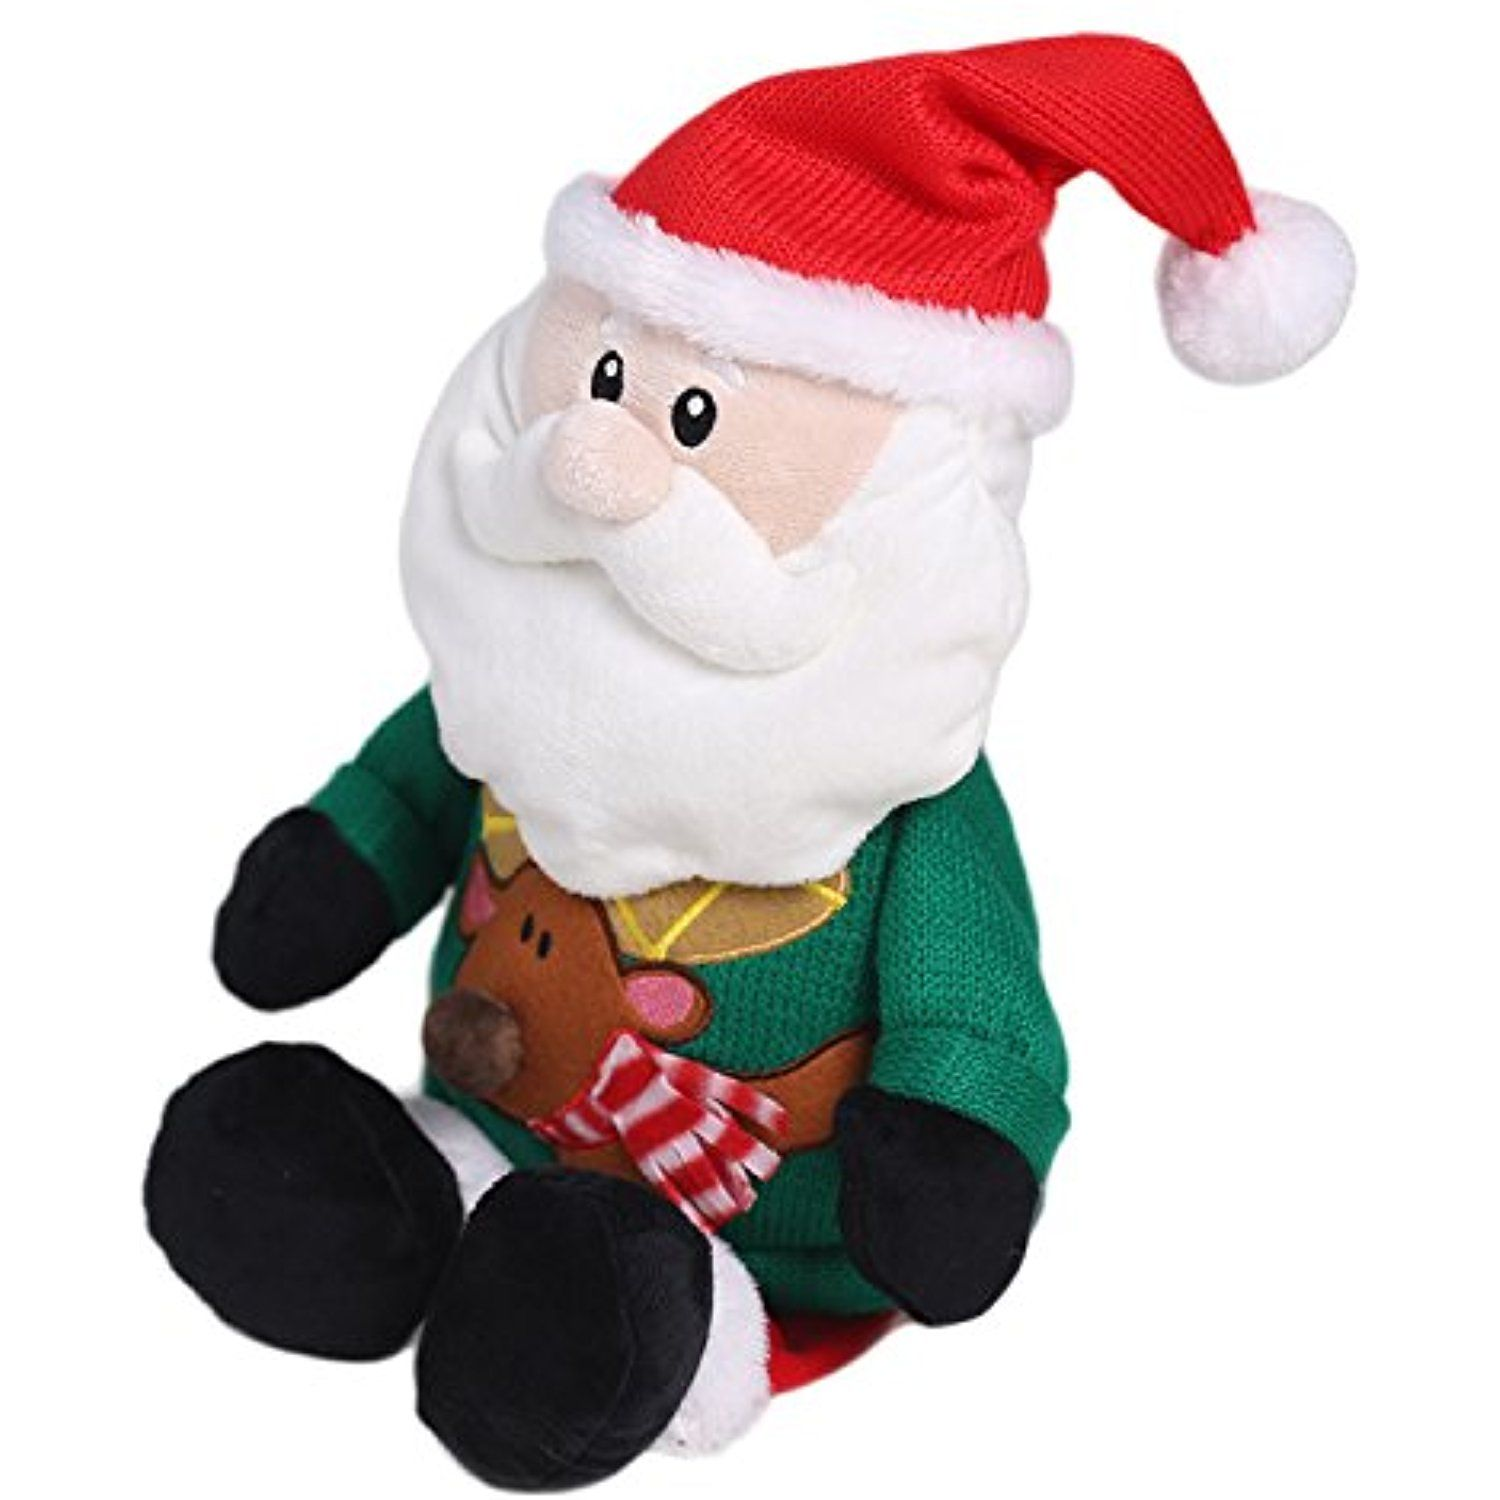 hollyhome soft stuffed animal father christmas plush toy home decorations festival birthday gift for kids - Christmas Plush Toys